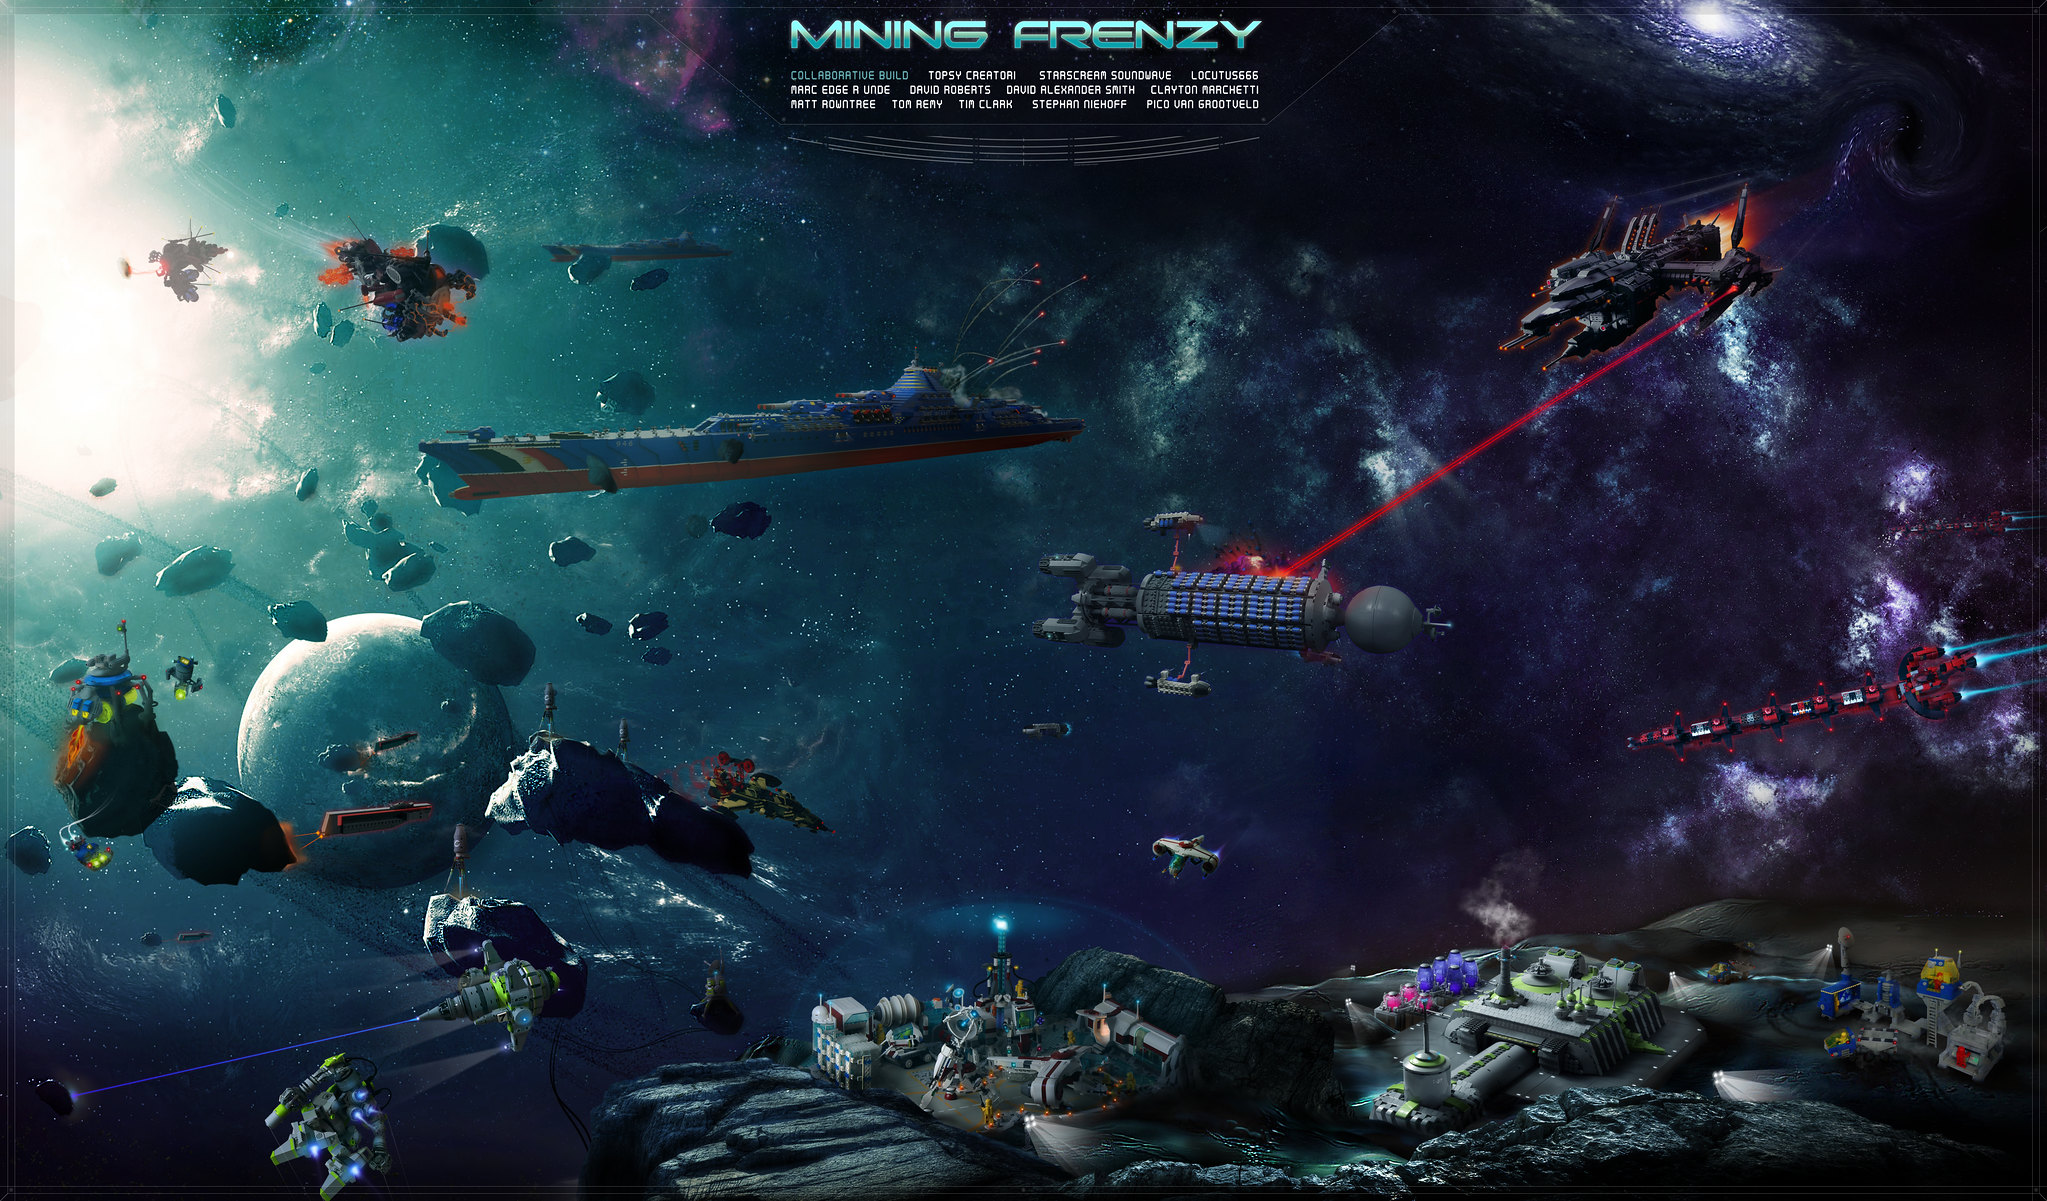 Mining Frenzy, a digital LEGO space collaboration